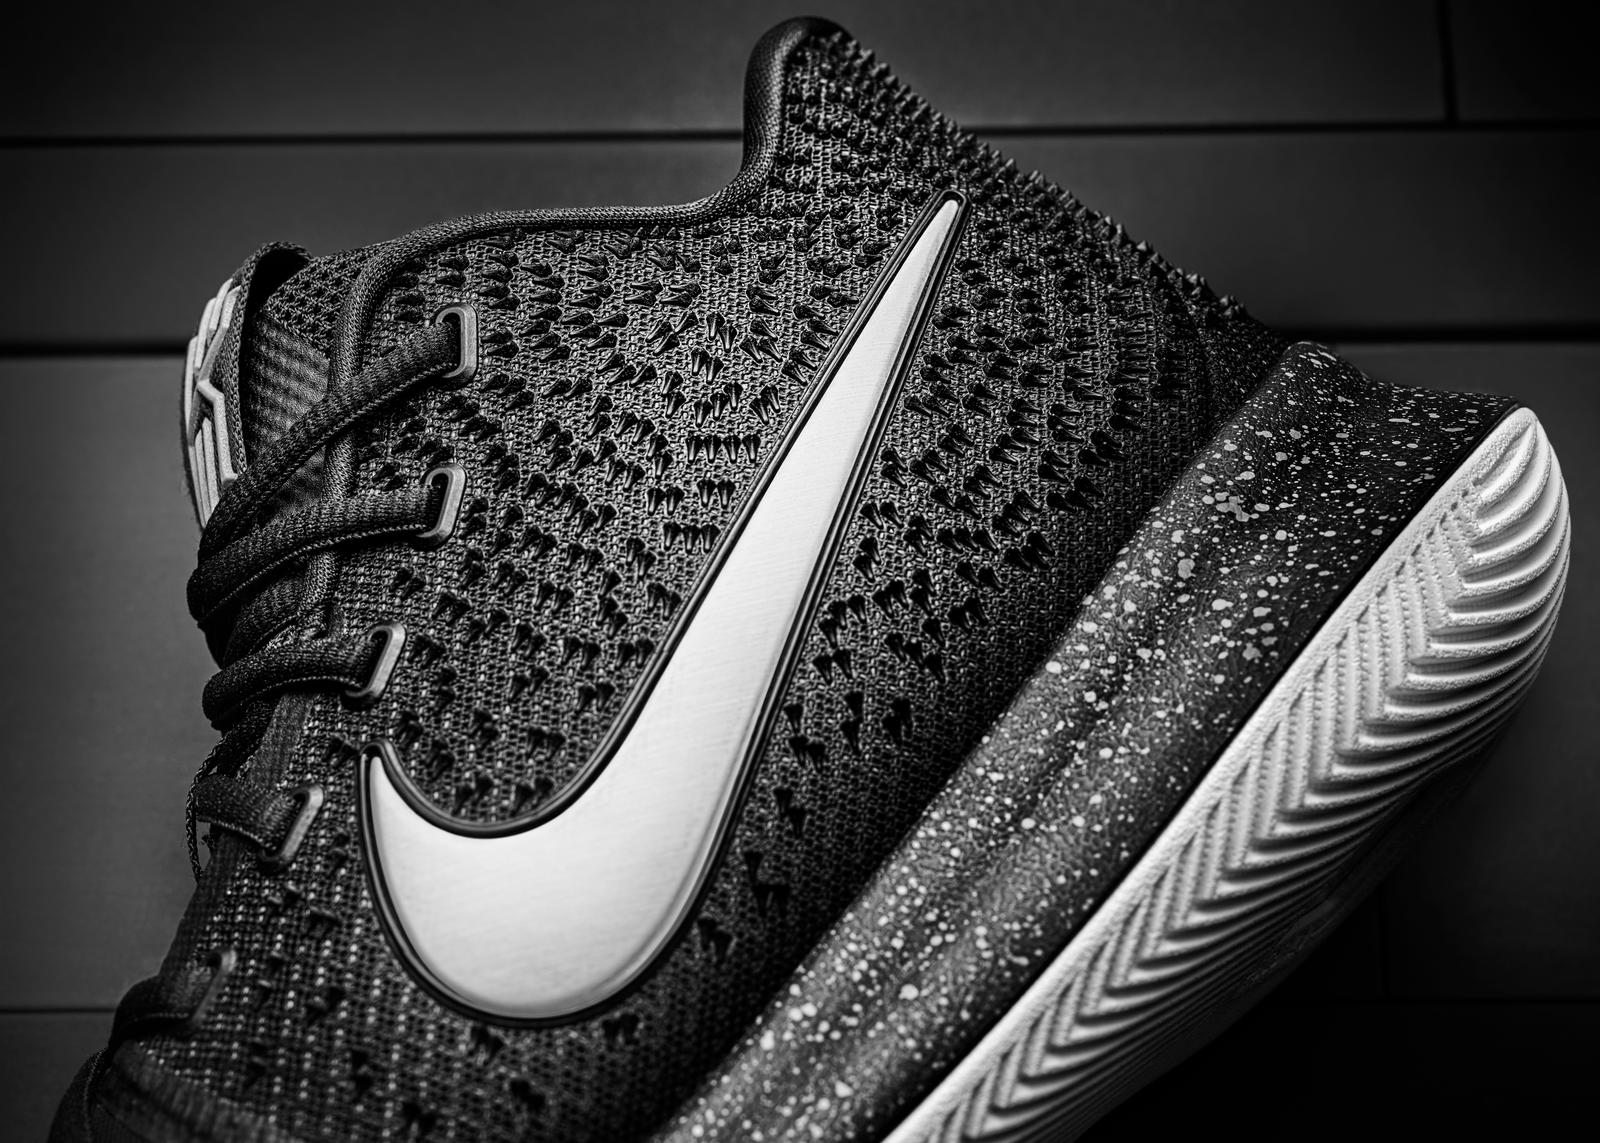 official photos 501d2 66dbd Irving s third signature shoe is tailored to his game.  16-400 Nike Kyrie 3 Side Texture-01